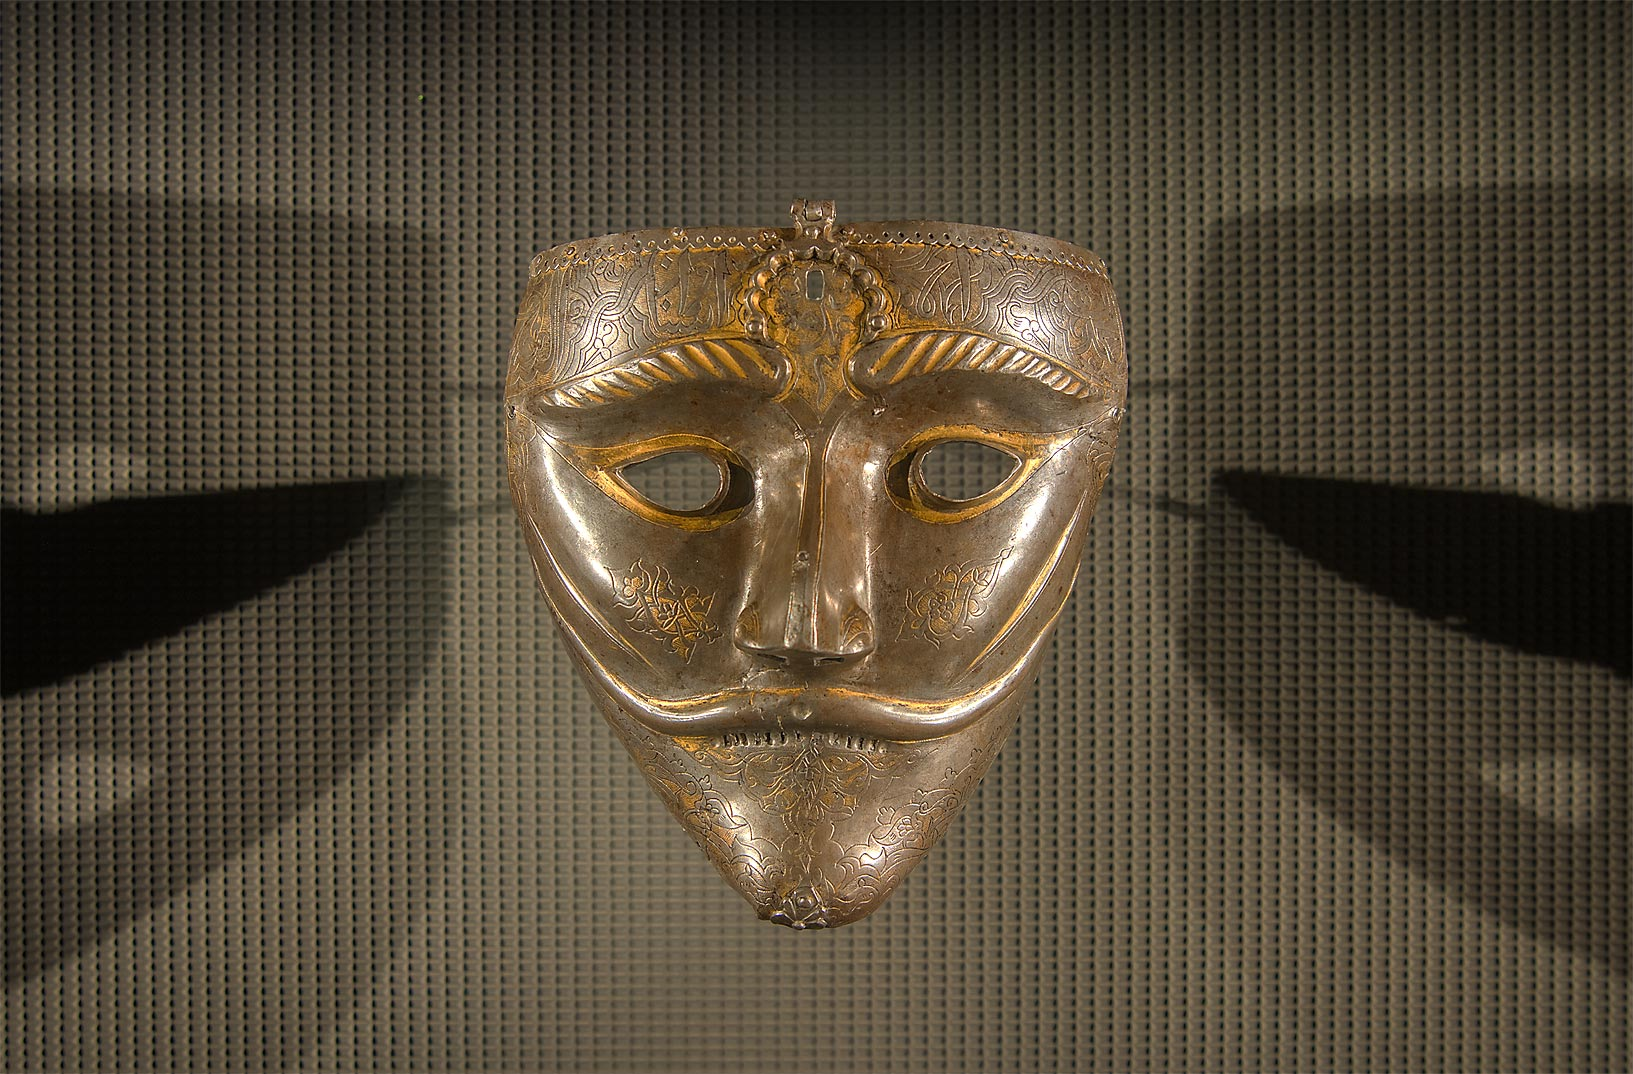 War mask (15th century, steel with gold inlay) in Museum of Islamic Art. Doha, Qatar